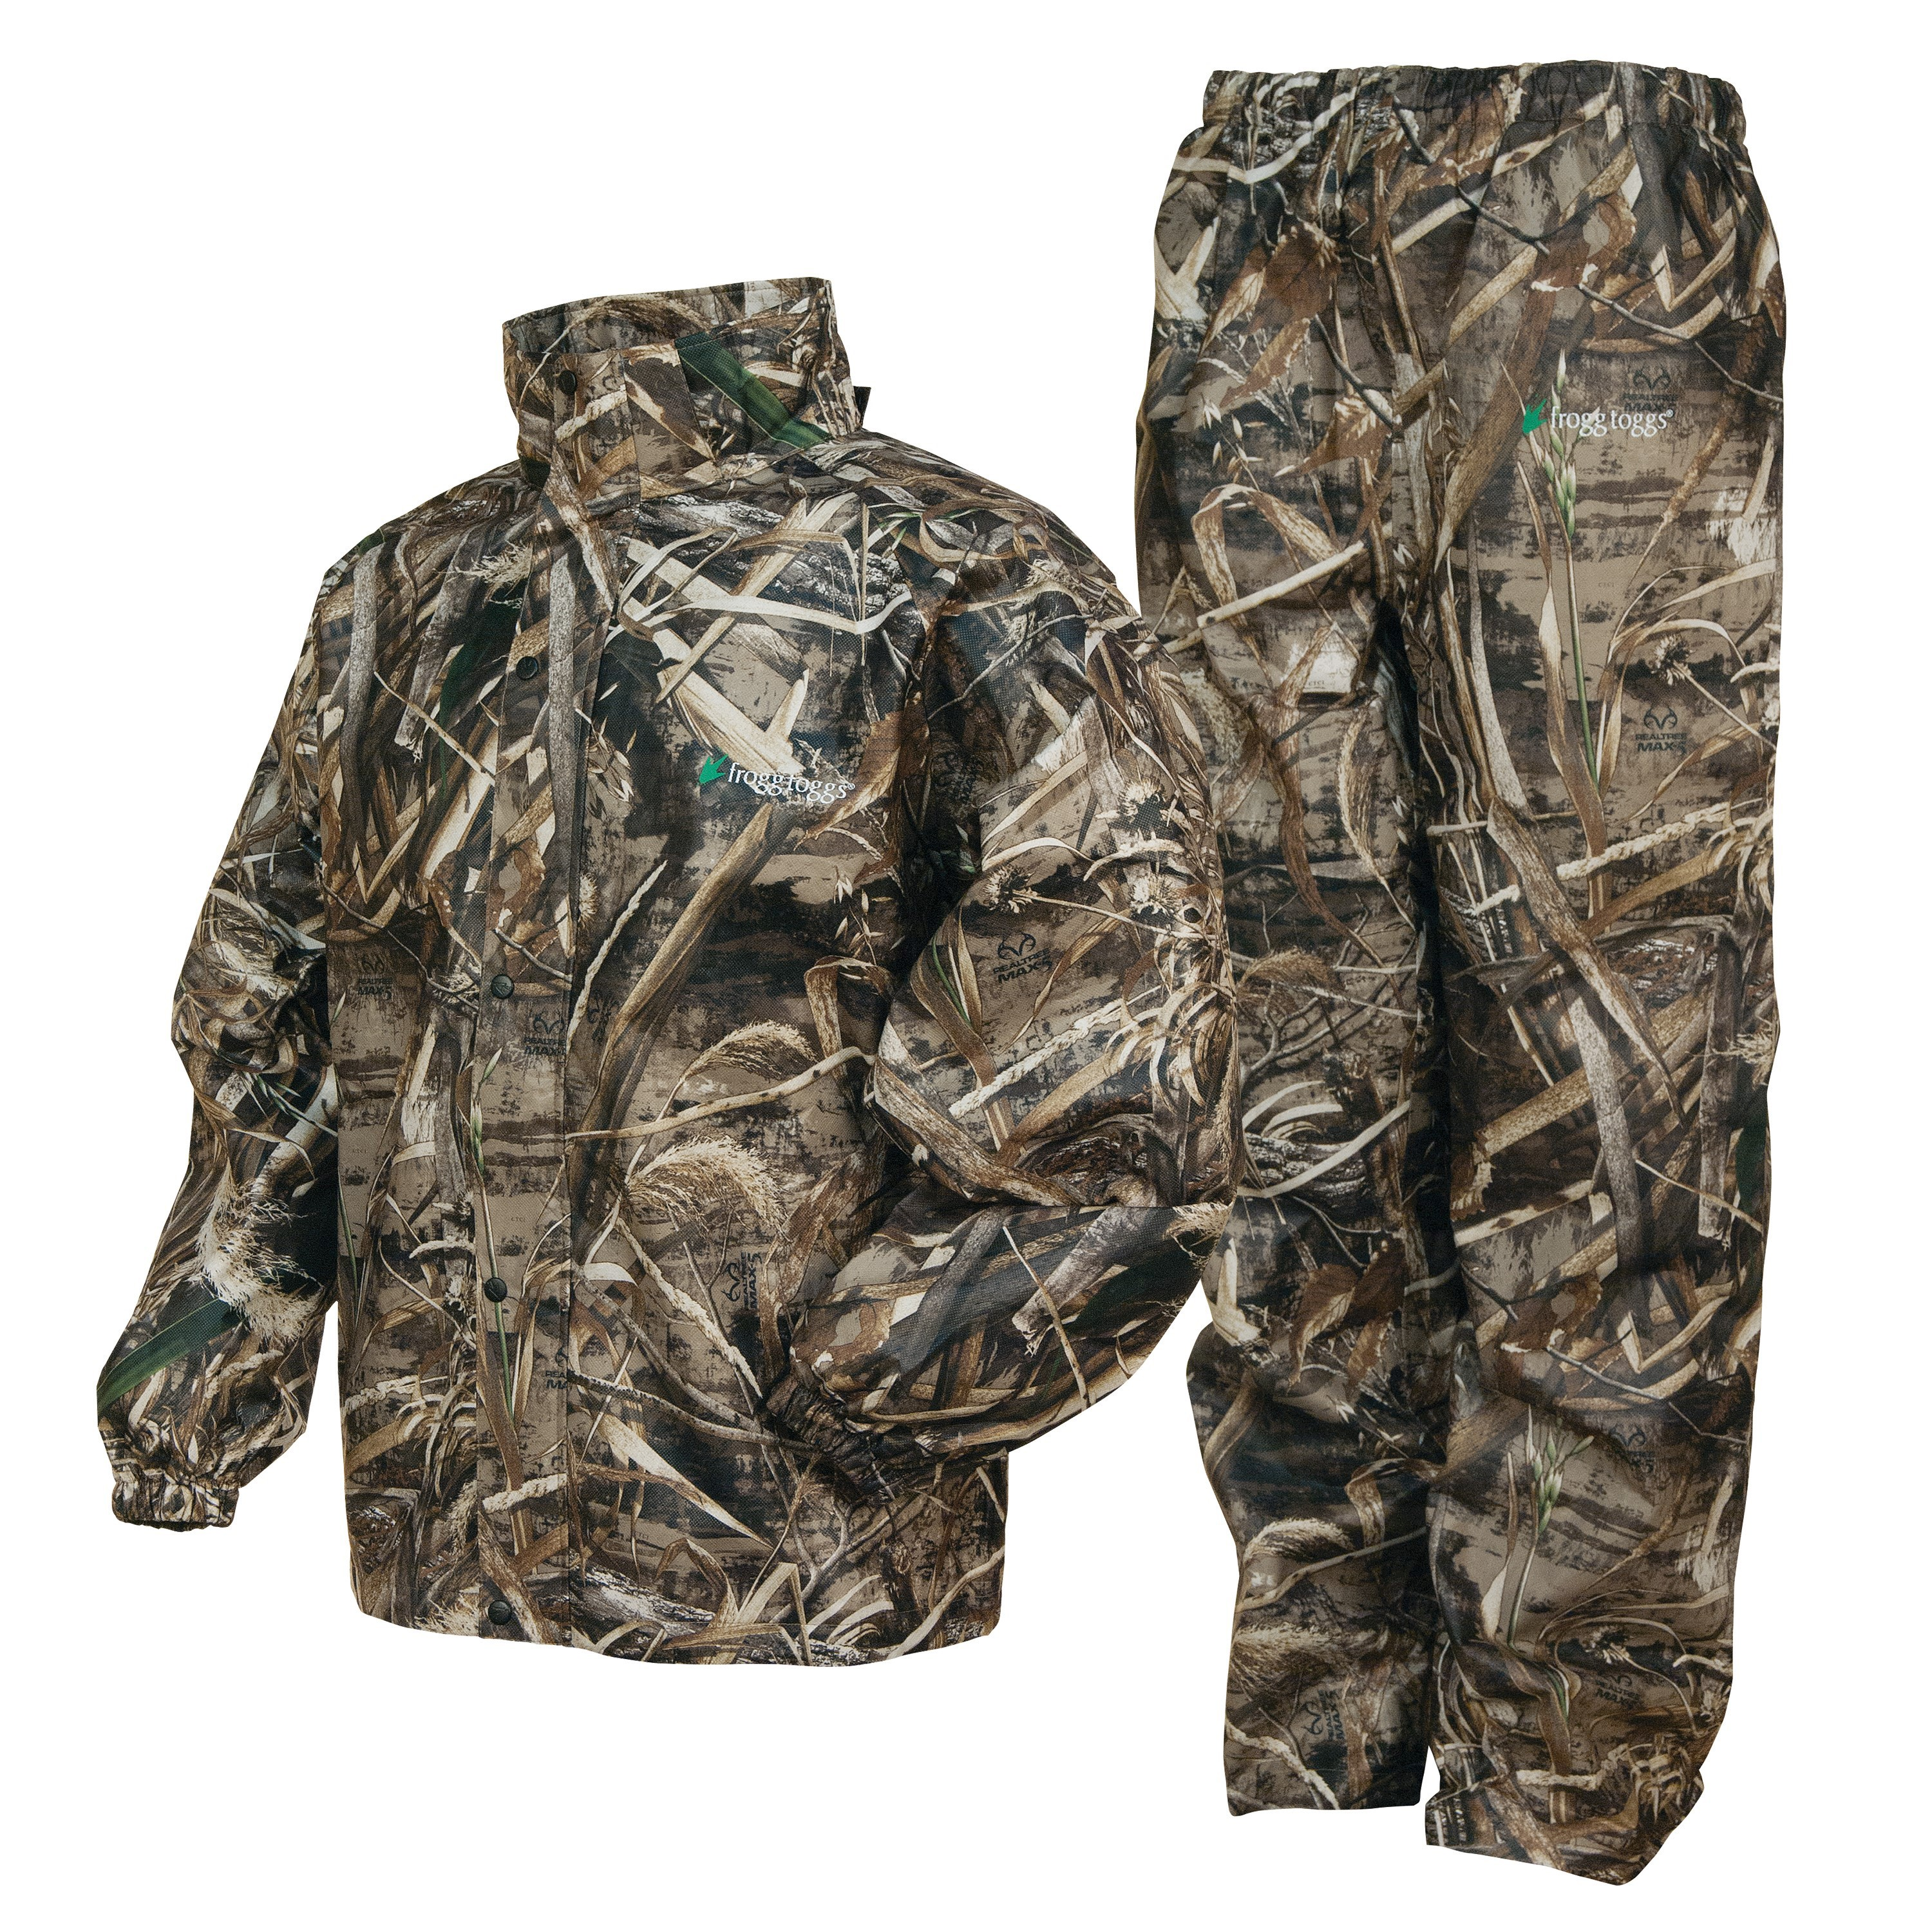 frogg toggs all sports camo suit, max 5 camo